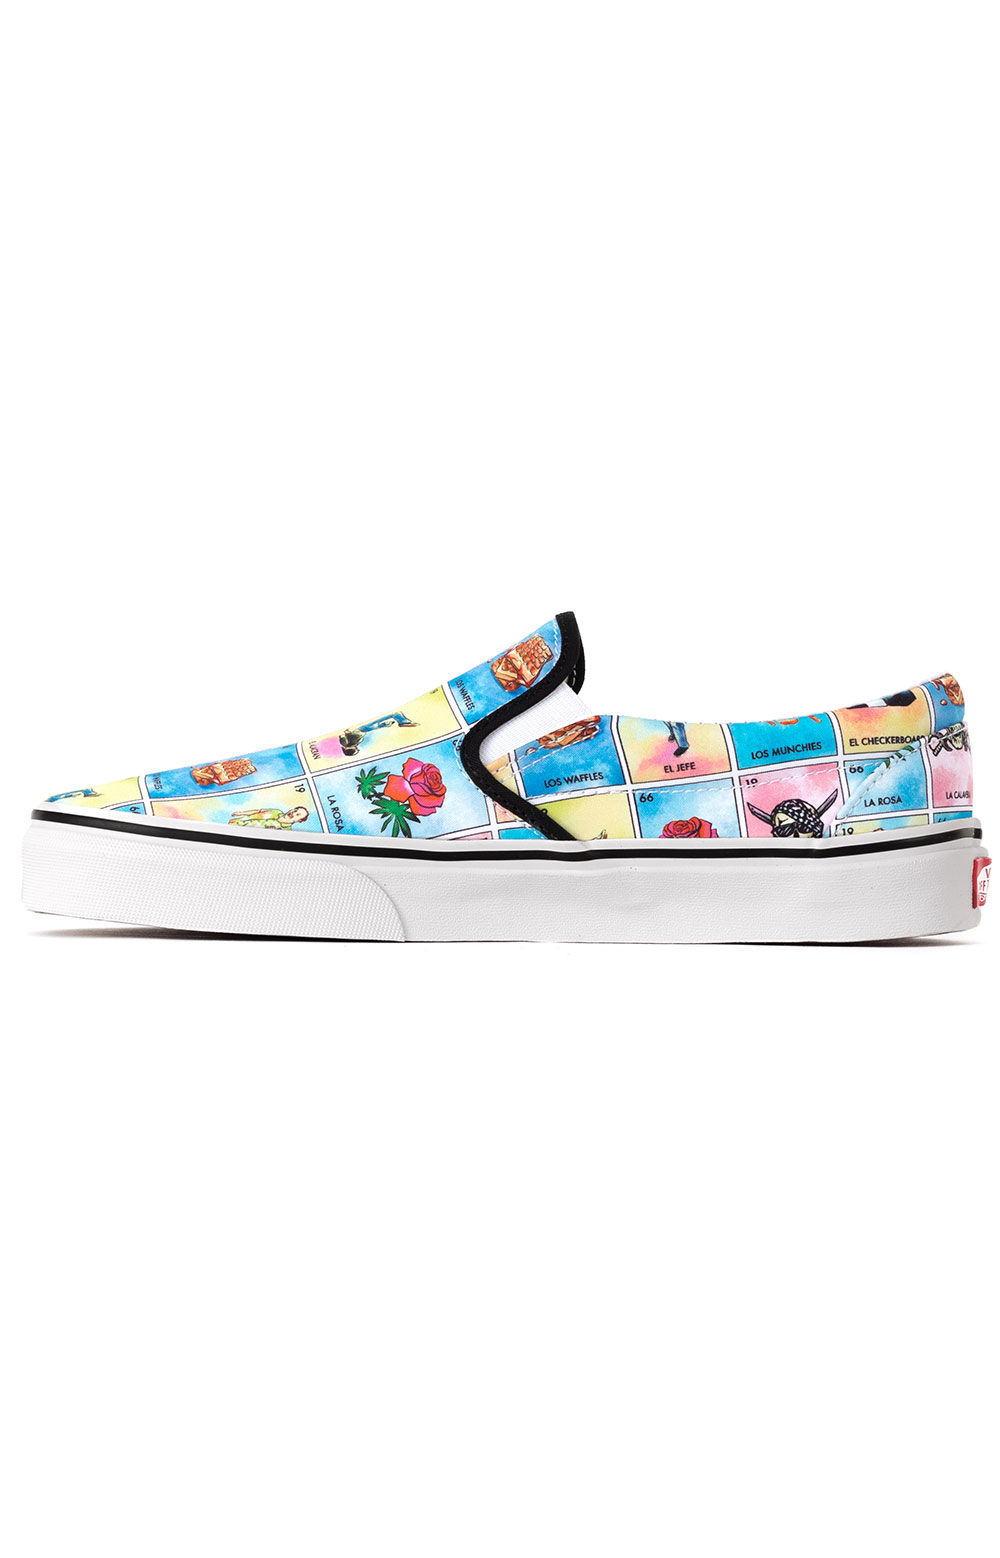 (U38WN1) Los Vans Classic Slip-On Shoes - Multi/True White  4